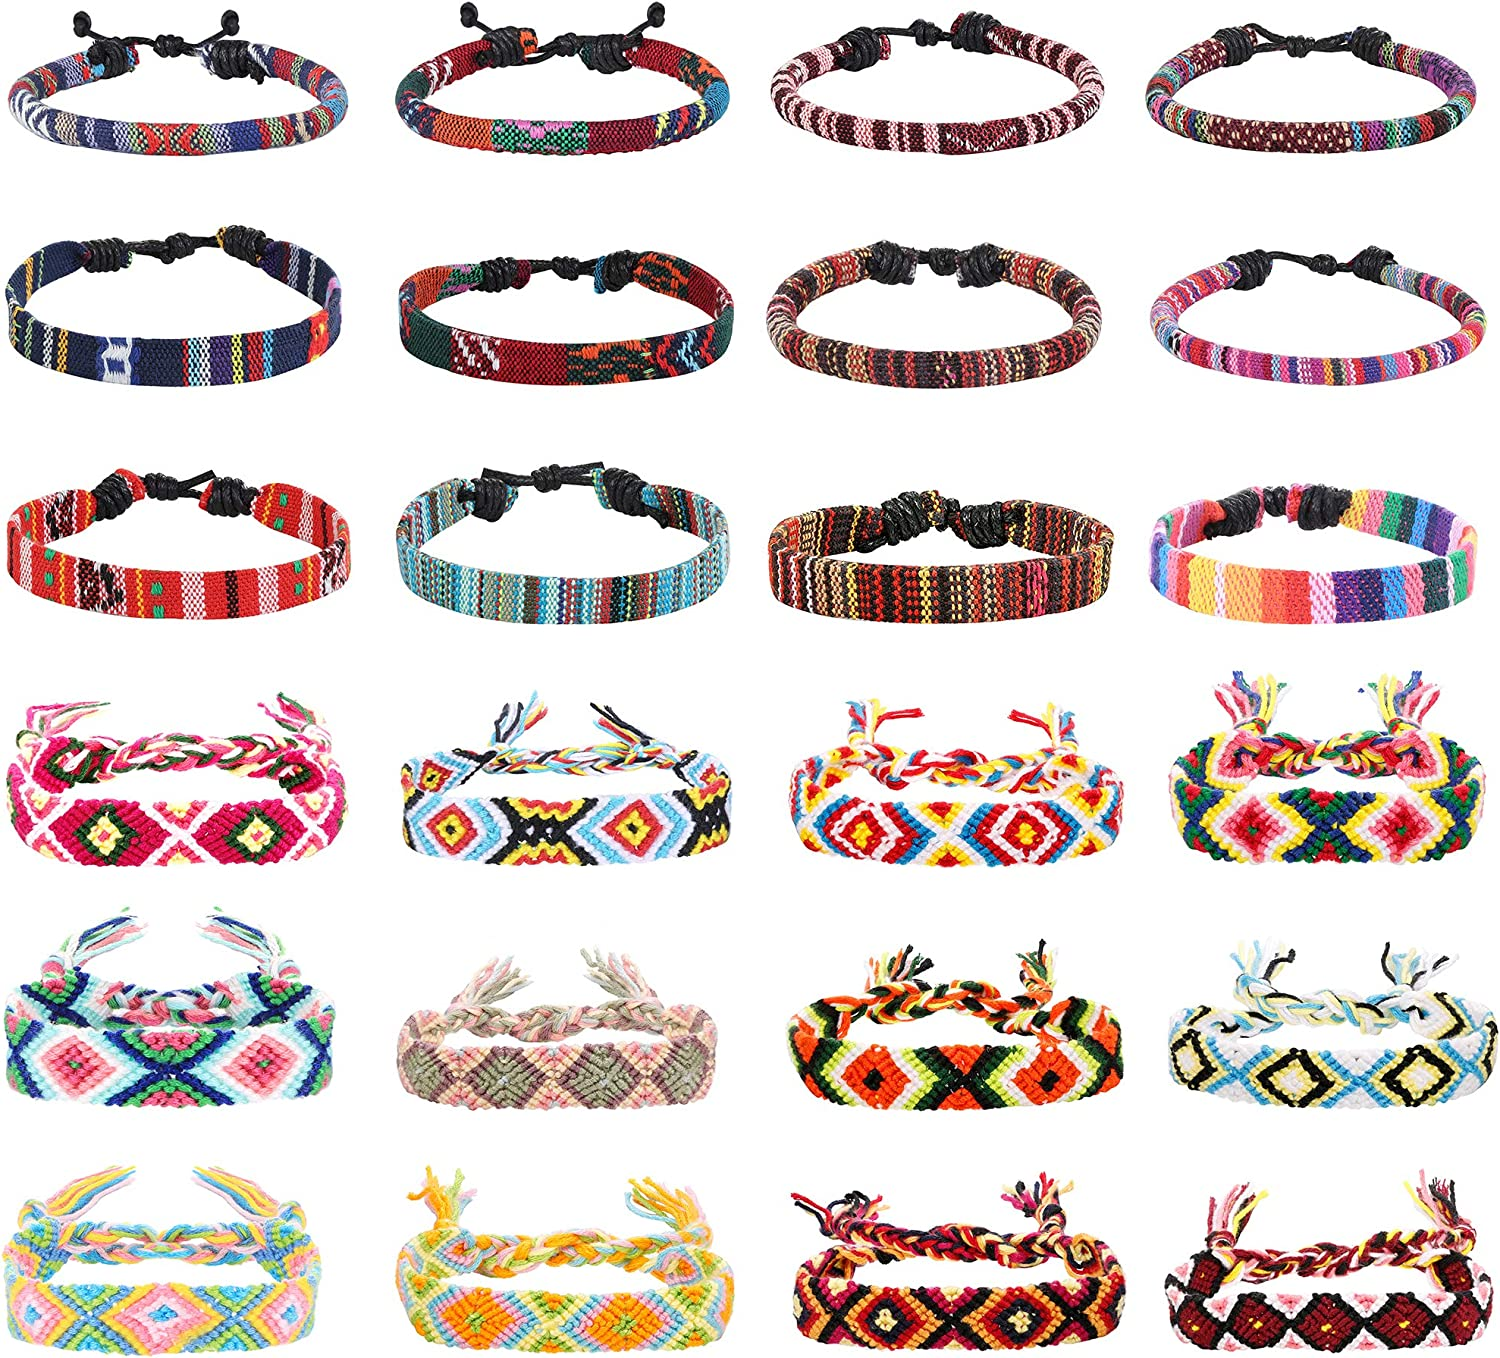 LOYALLOOK 24pcs Men Women Linen Hemp Cords Wood Beads Ethnic Tribal Bracelets Leather Wristbands Friendship Bracelet For Men Women